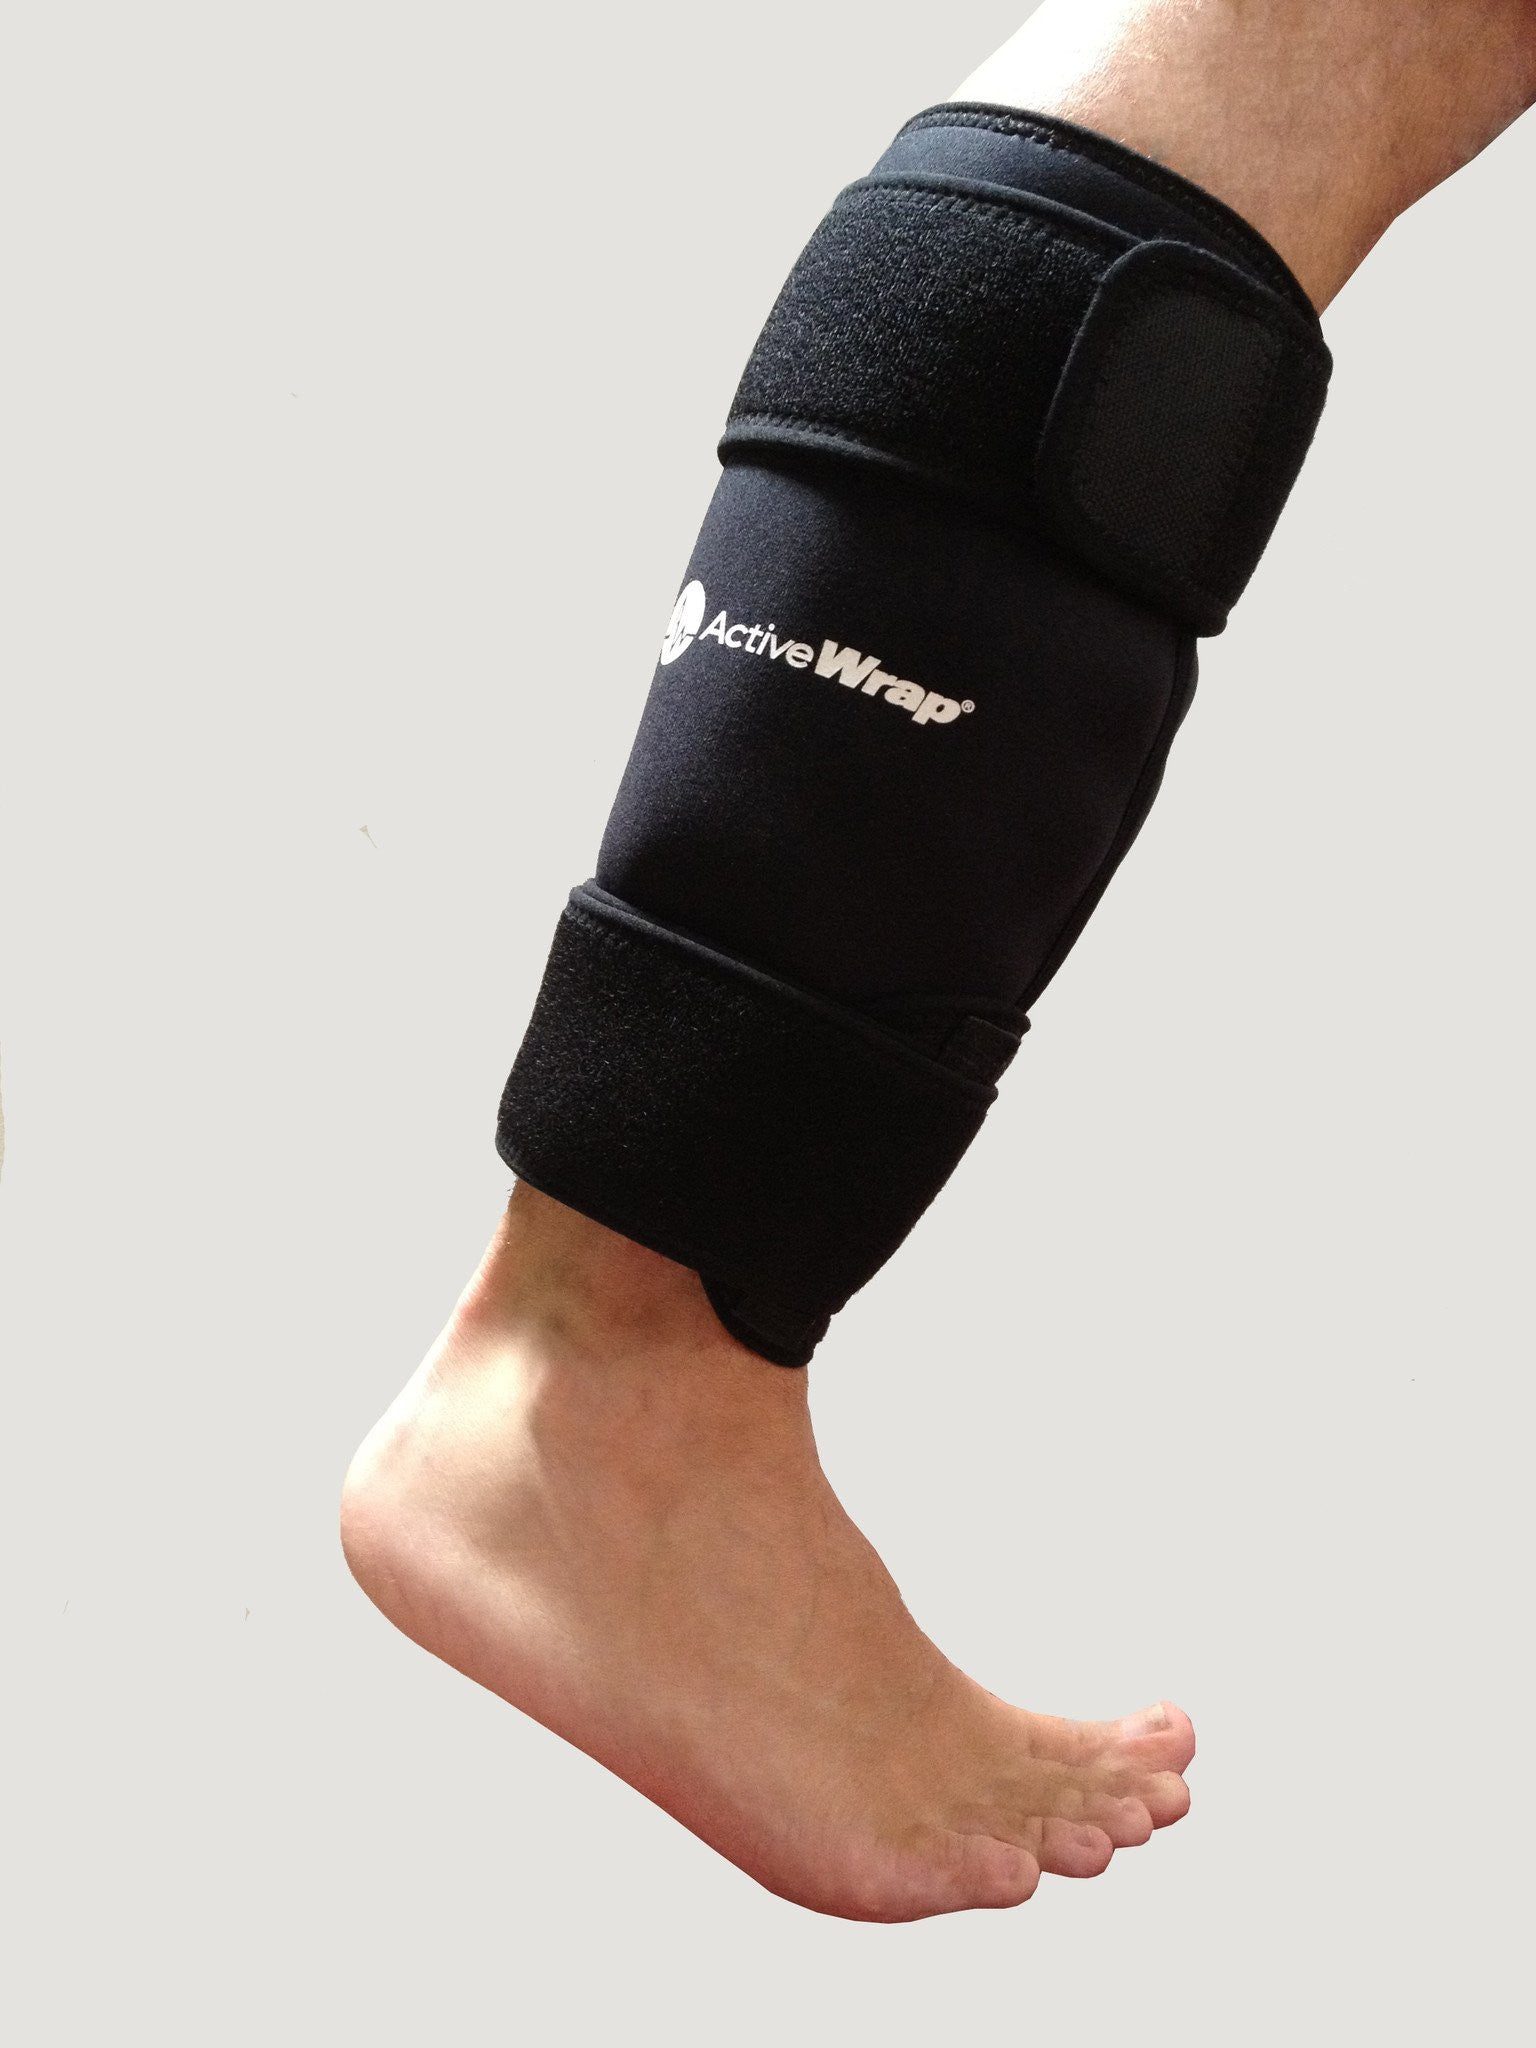 Ice wrap for shin, gastrocnemius or calf injuries